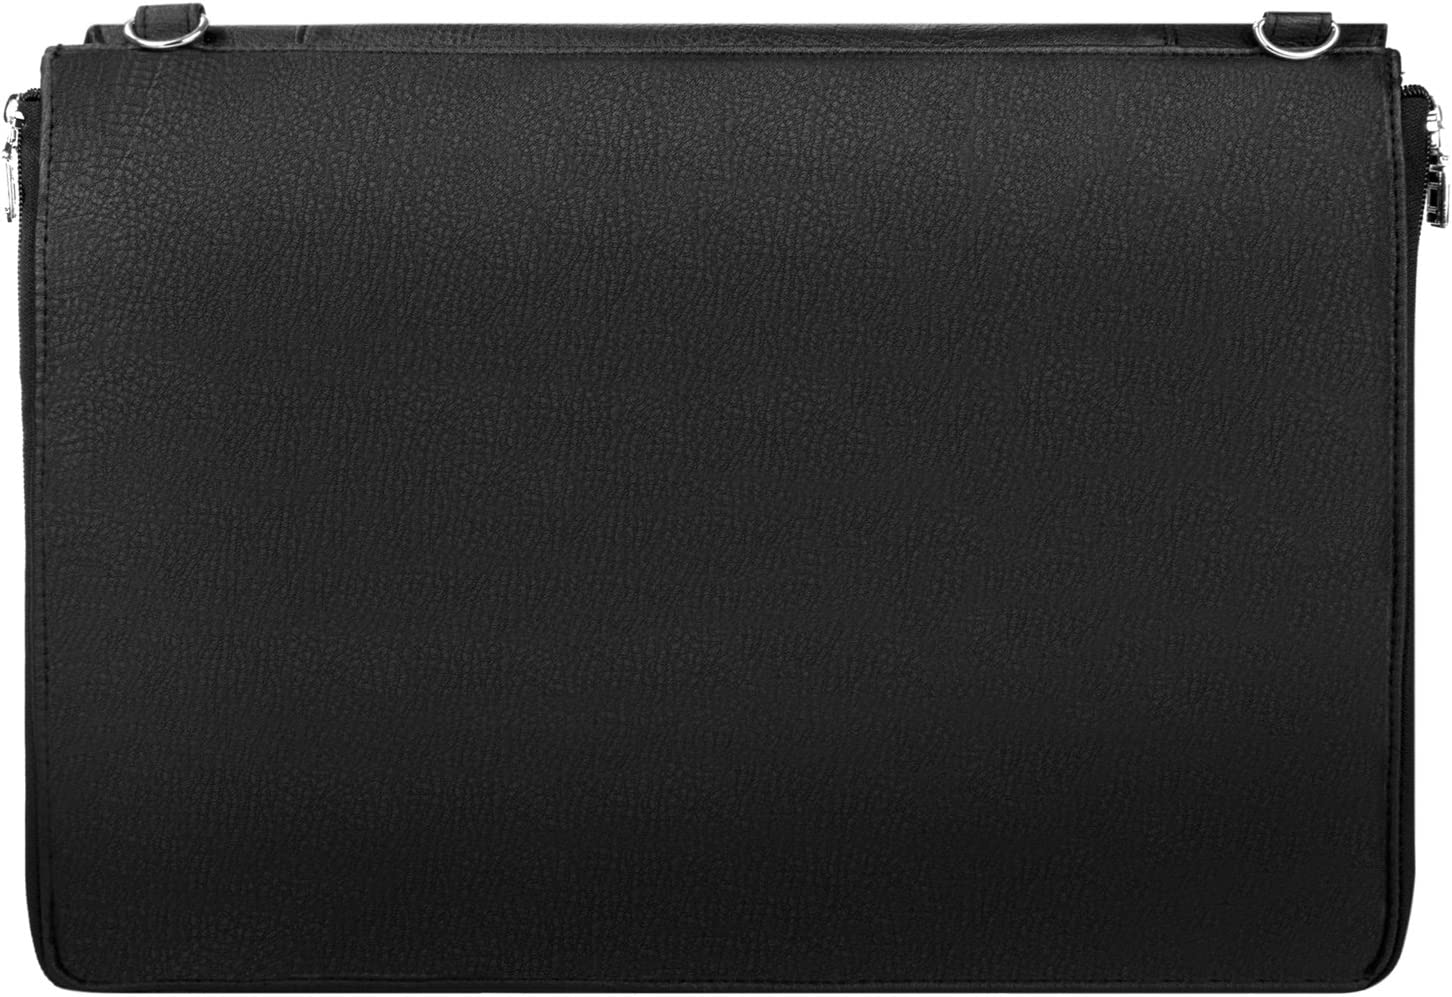 S 13 13.3 Switch 3 12.2 Switch 5 12 Switch Alpha 12 Aspire Switch 12 S 12.5 Lencca Axis 13 Texture Slim Laptop Messenger Bag for Acer Aspire R 11 11.6